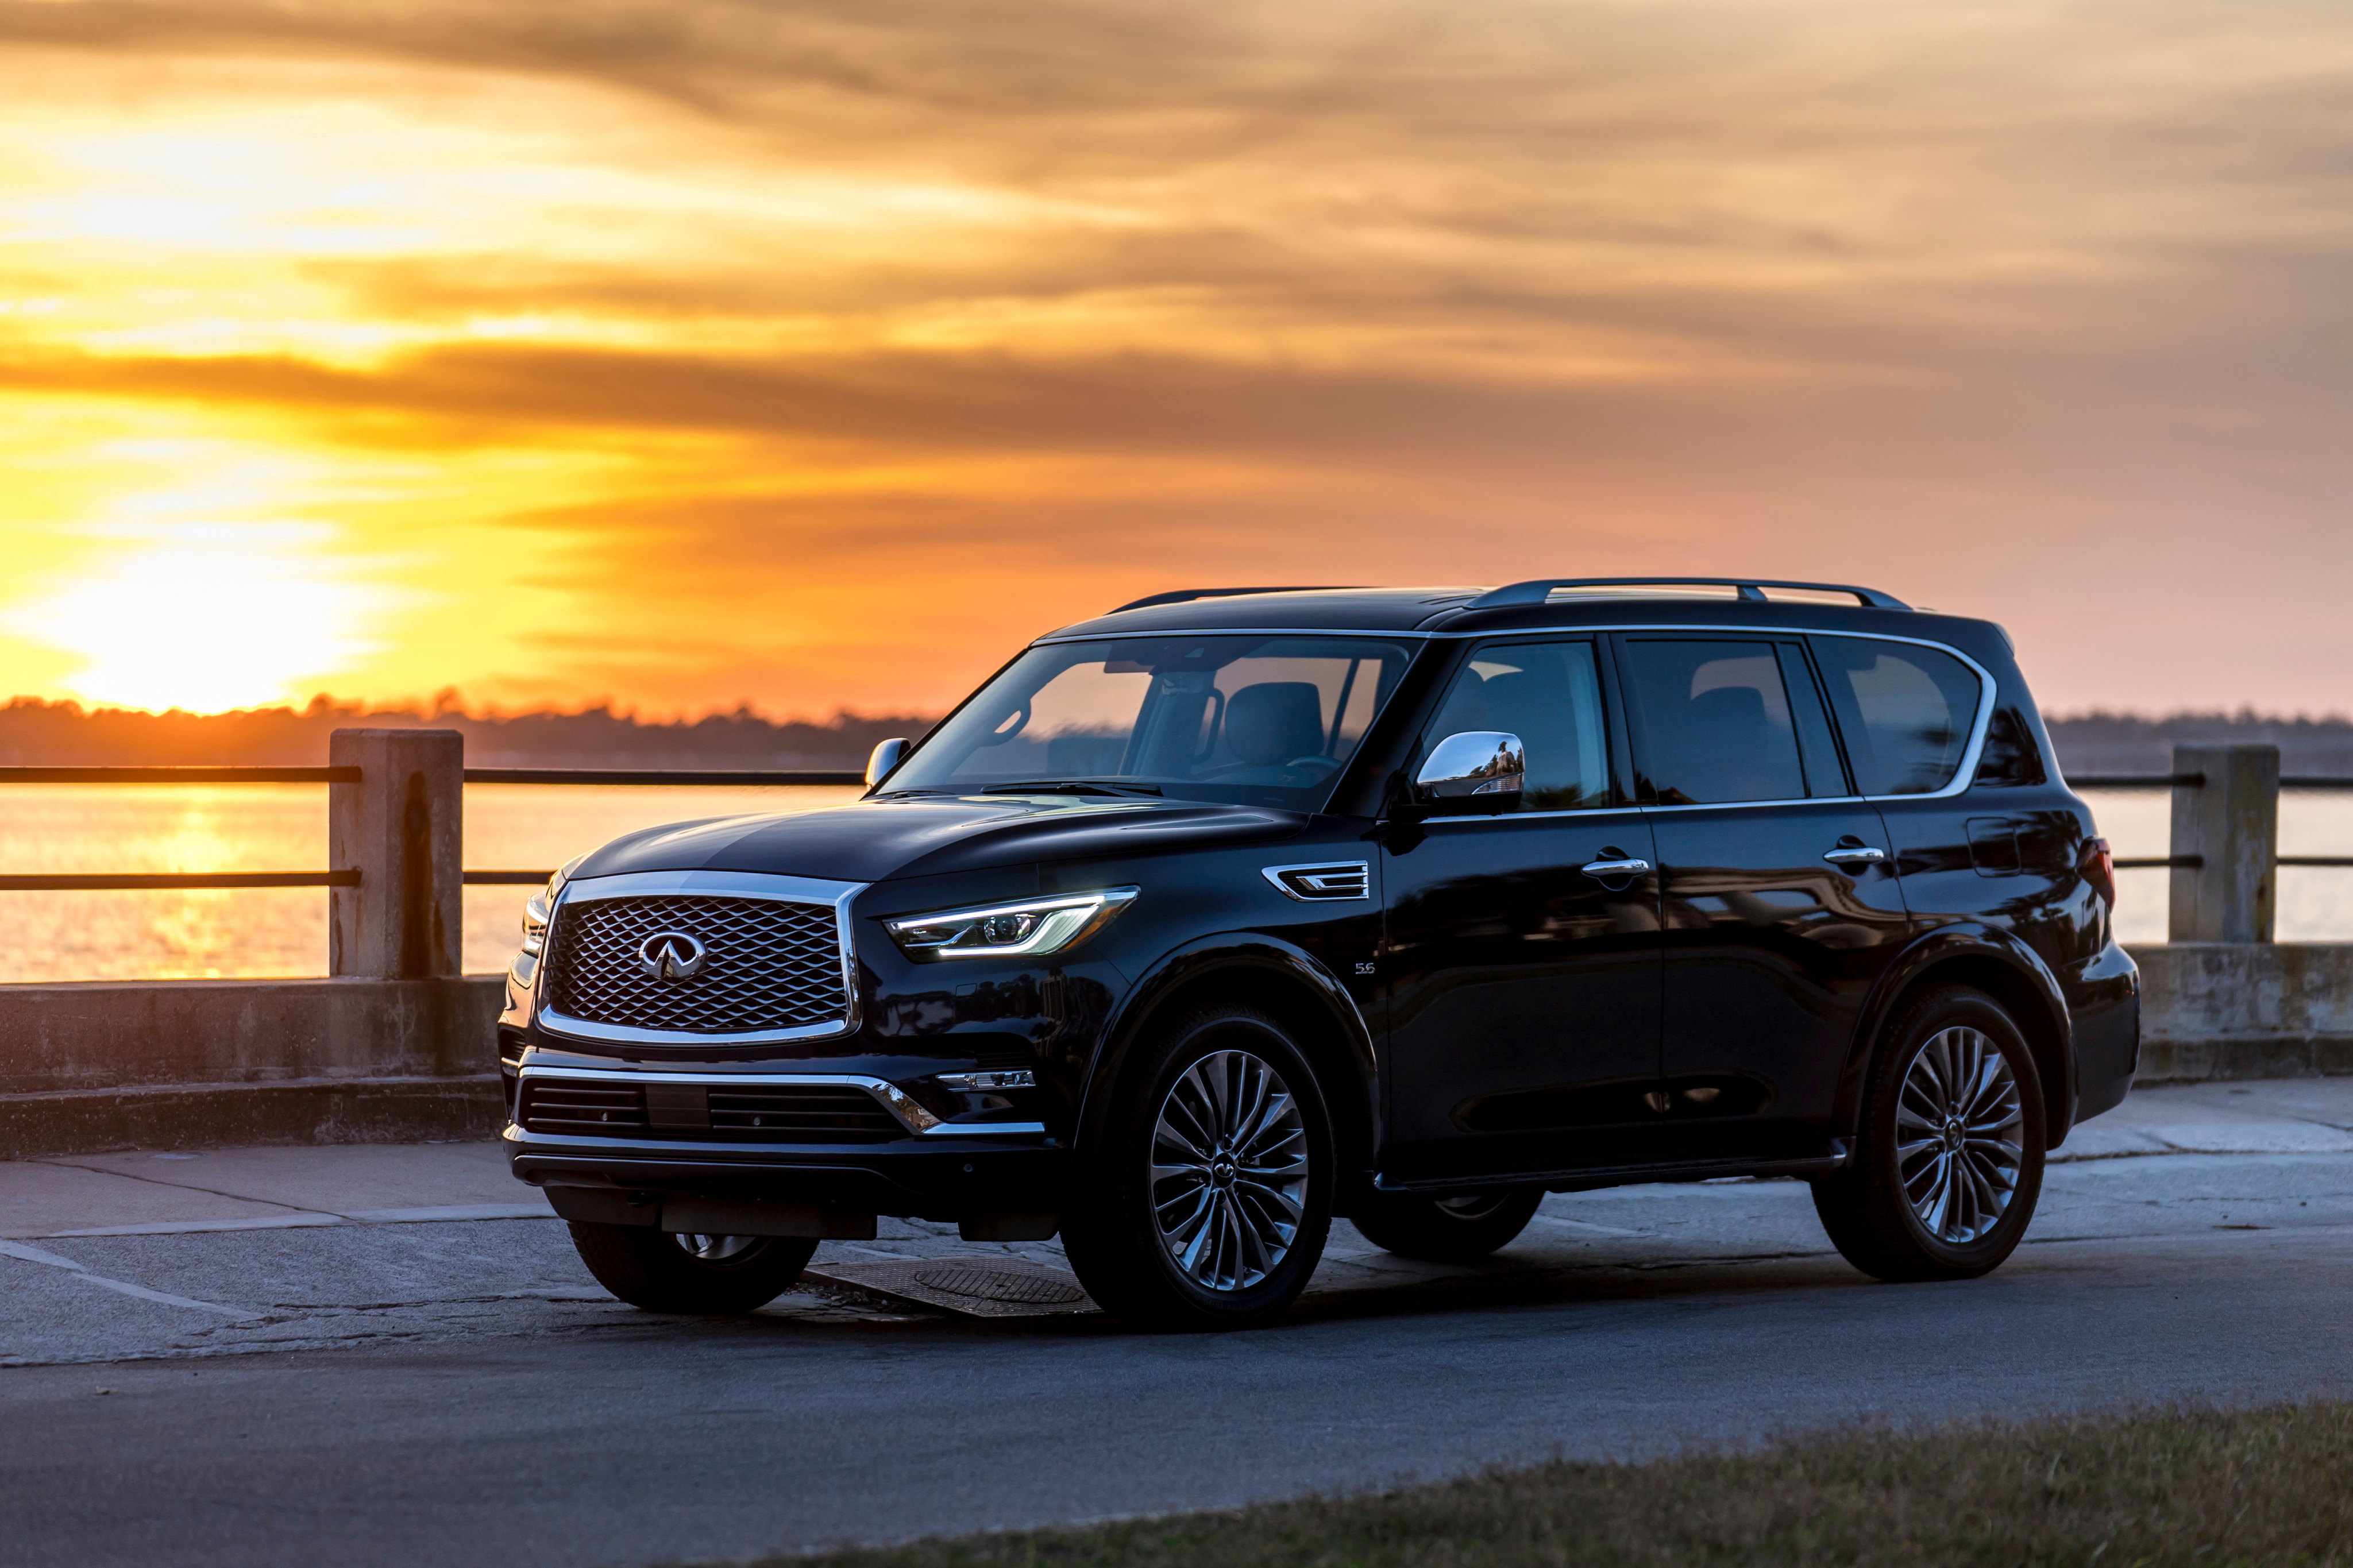 4096x2730 - Infiniti QX80 Wallpapers 3